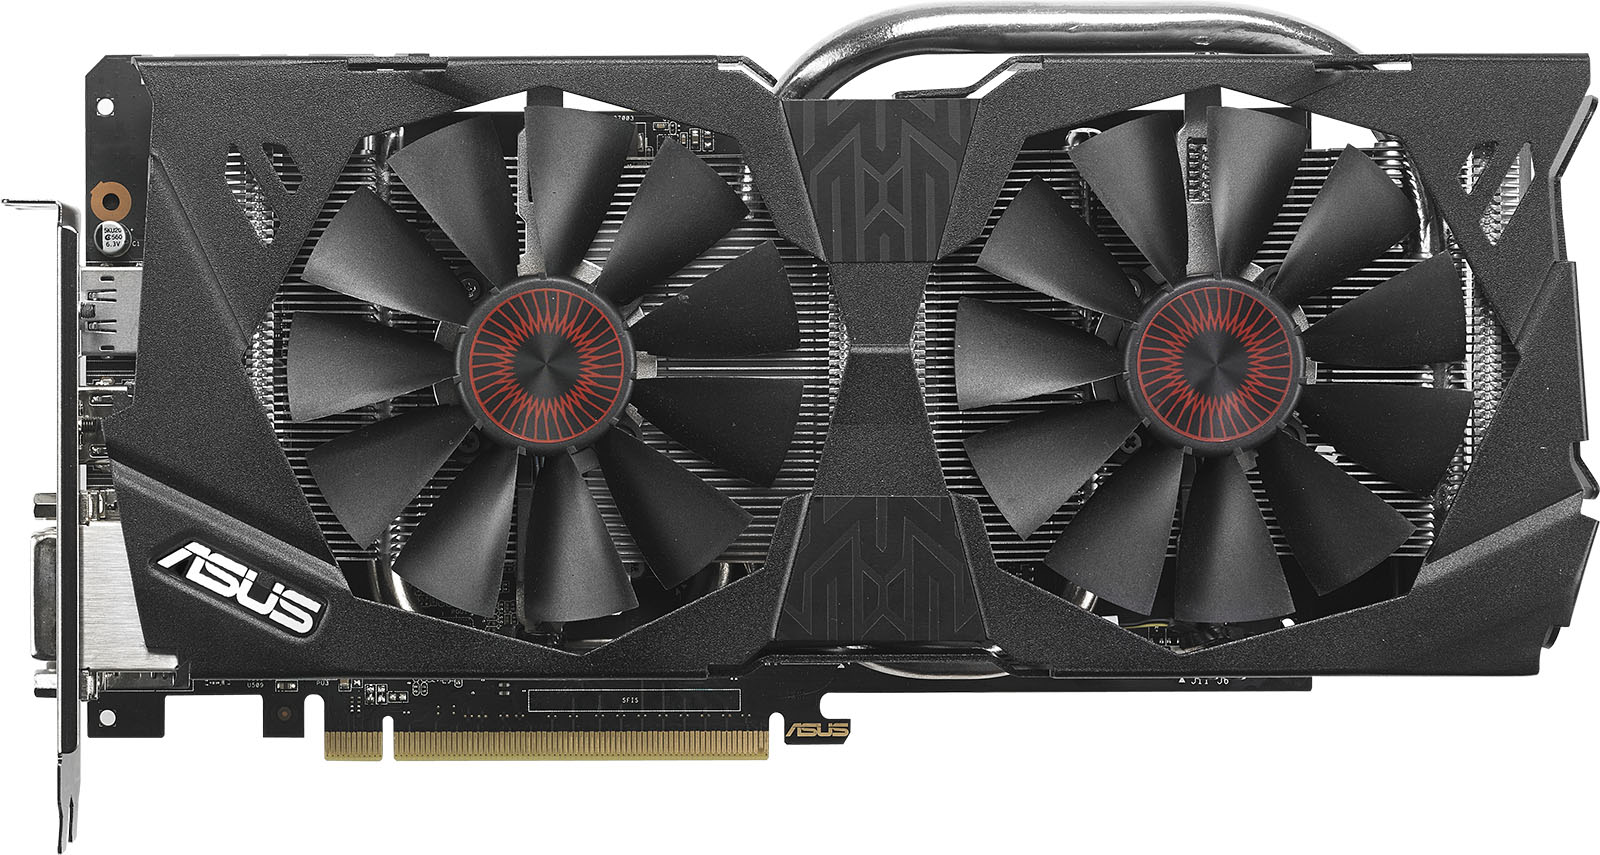 Asus Strix Edition Geforce Gtx 970 Graphics Card Review Techgage -